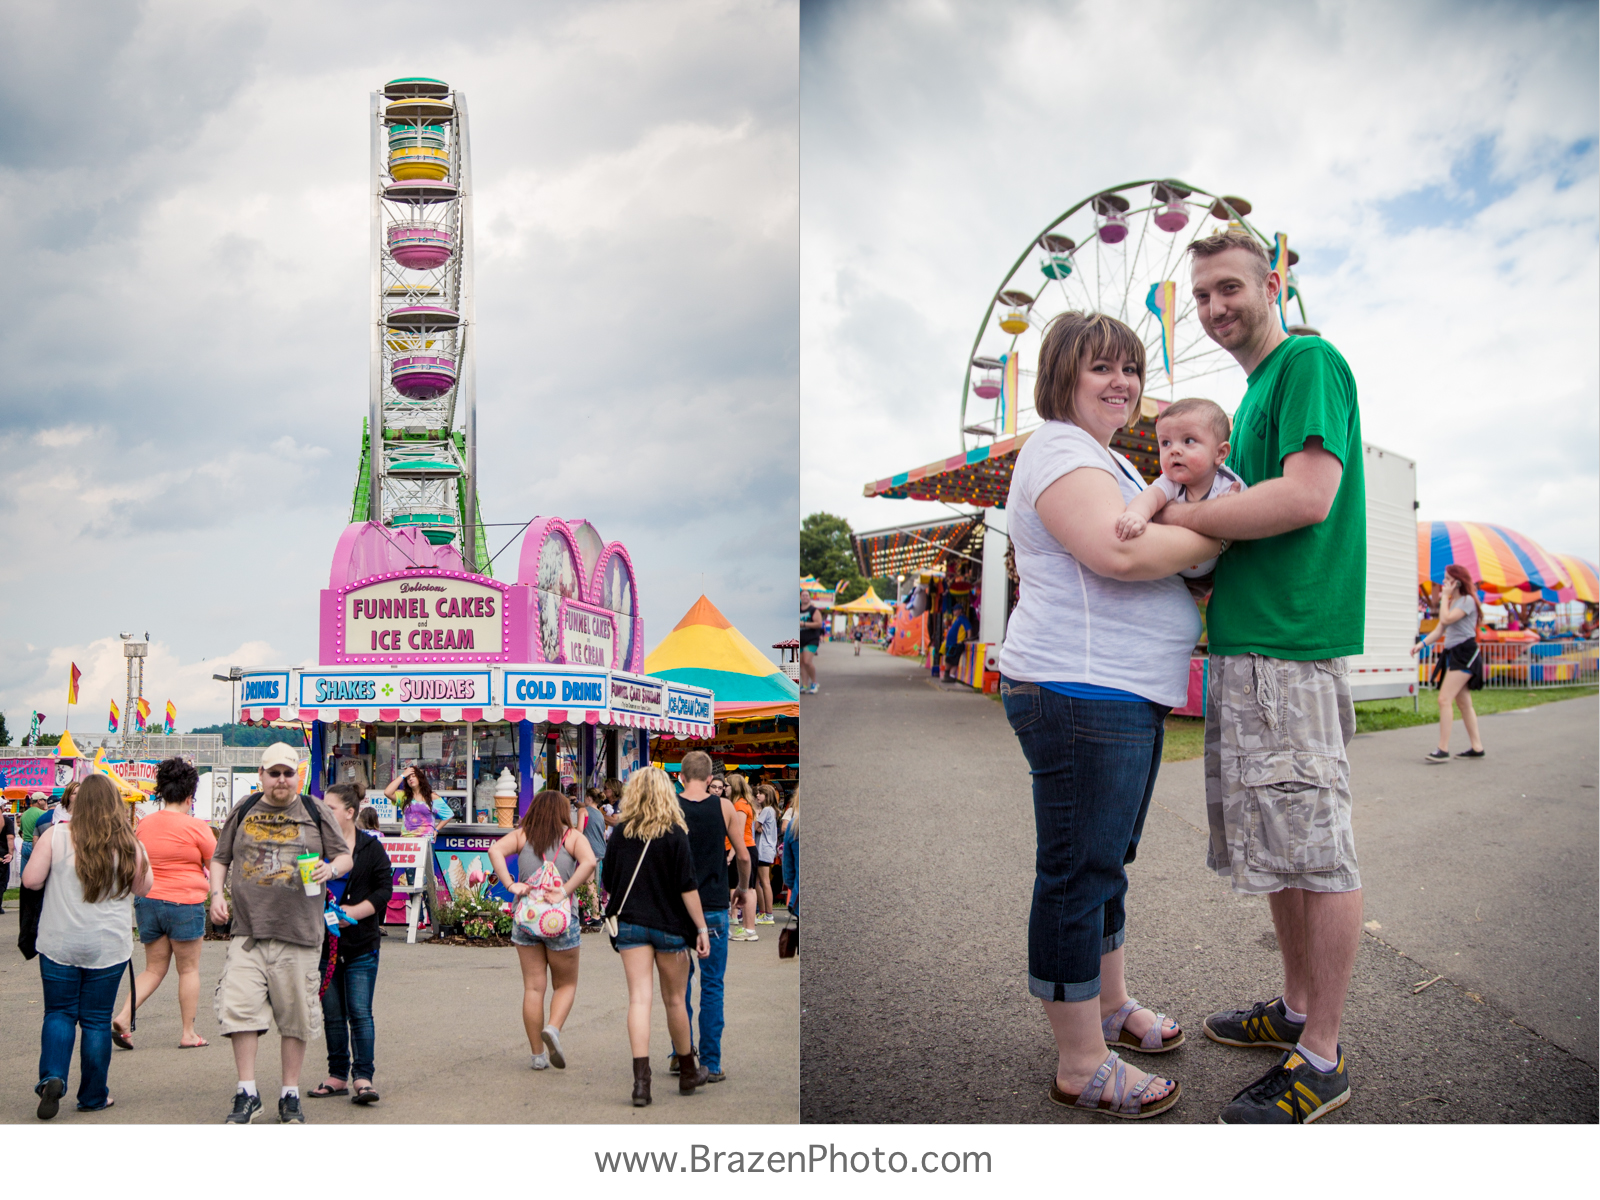 Florida State Fair-Orlando-Brazen Photo-5.jpg